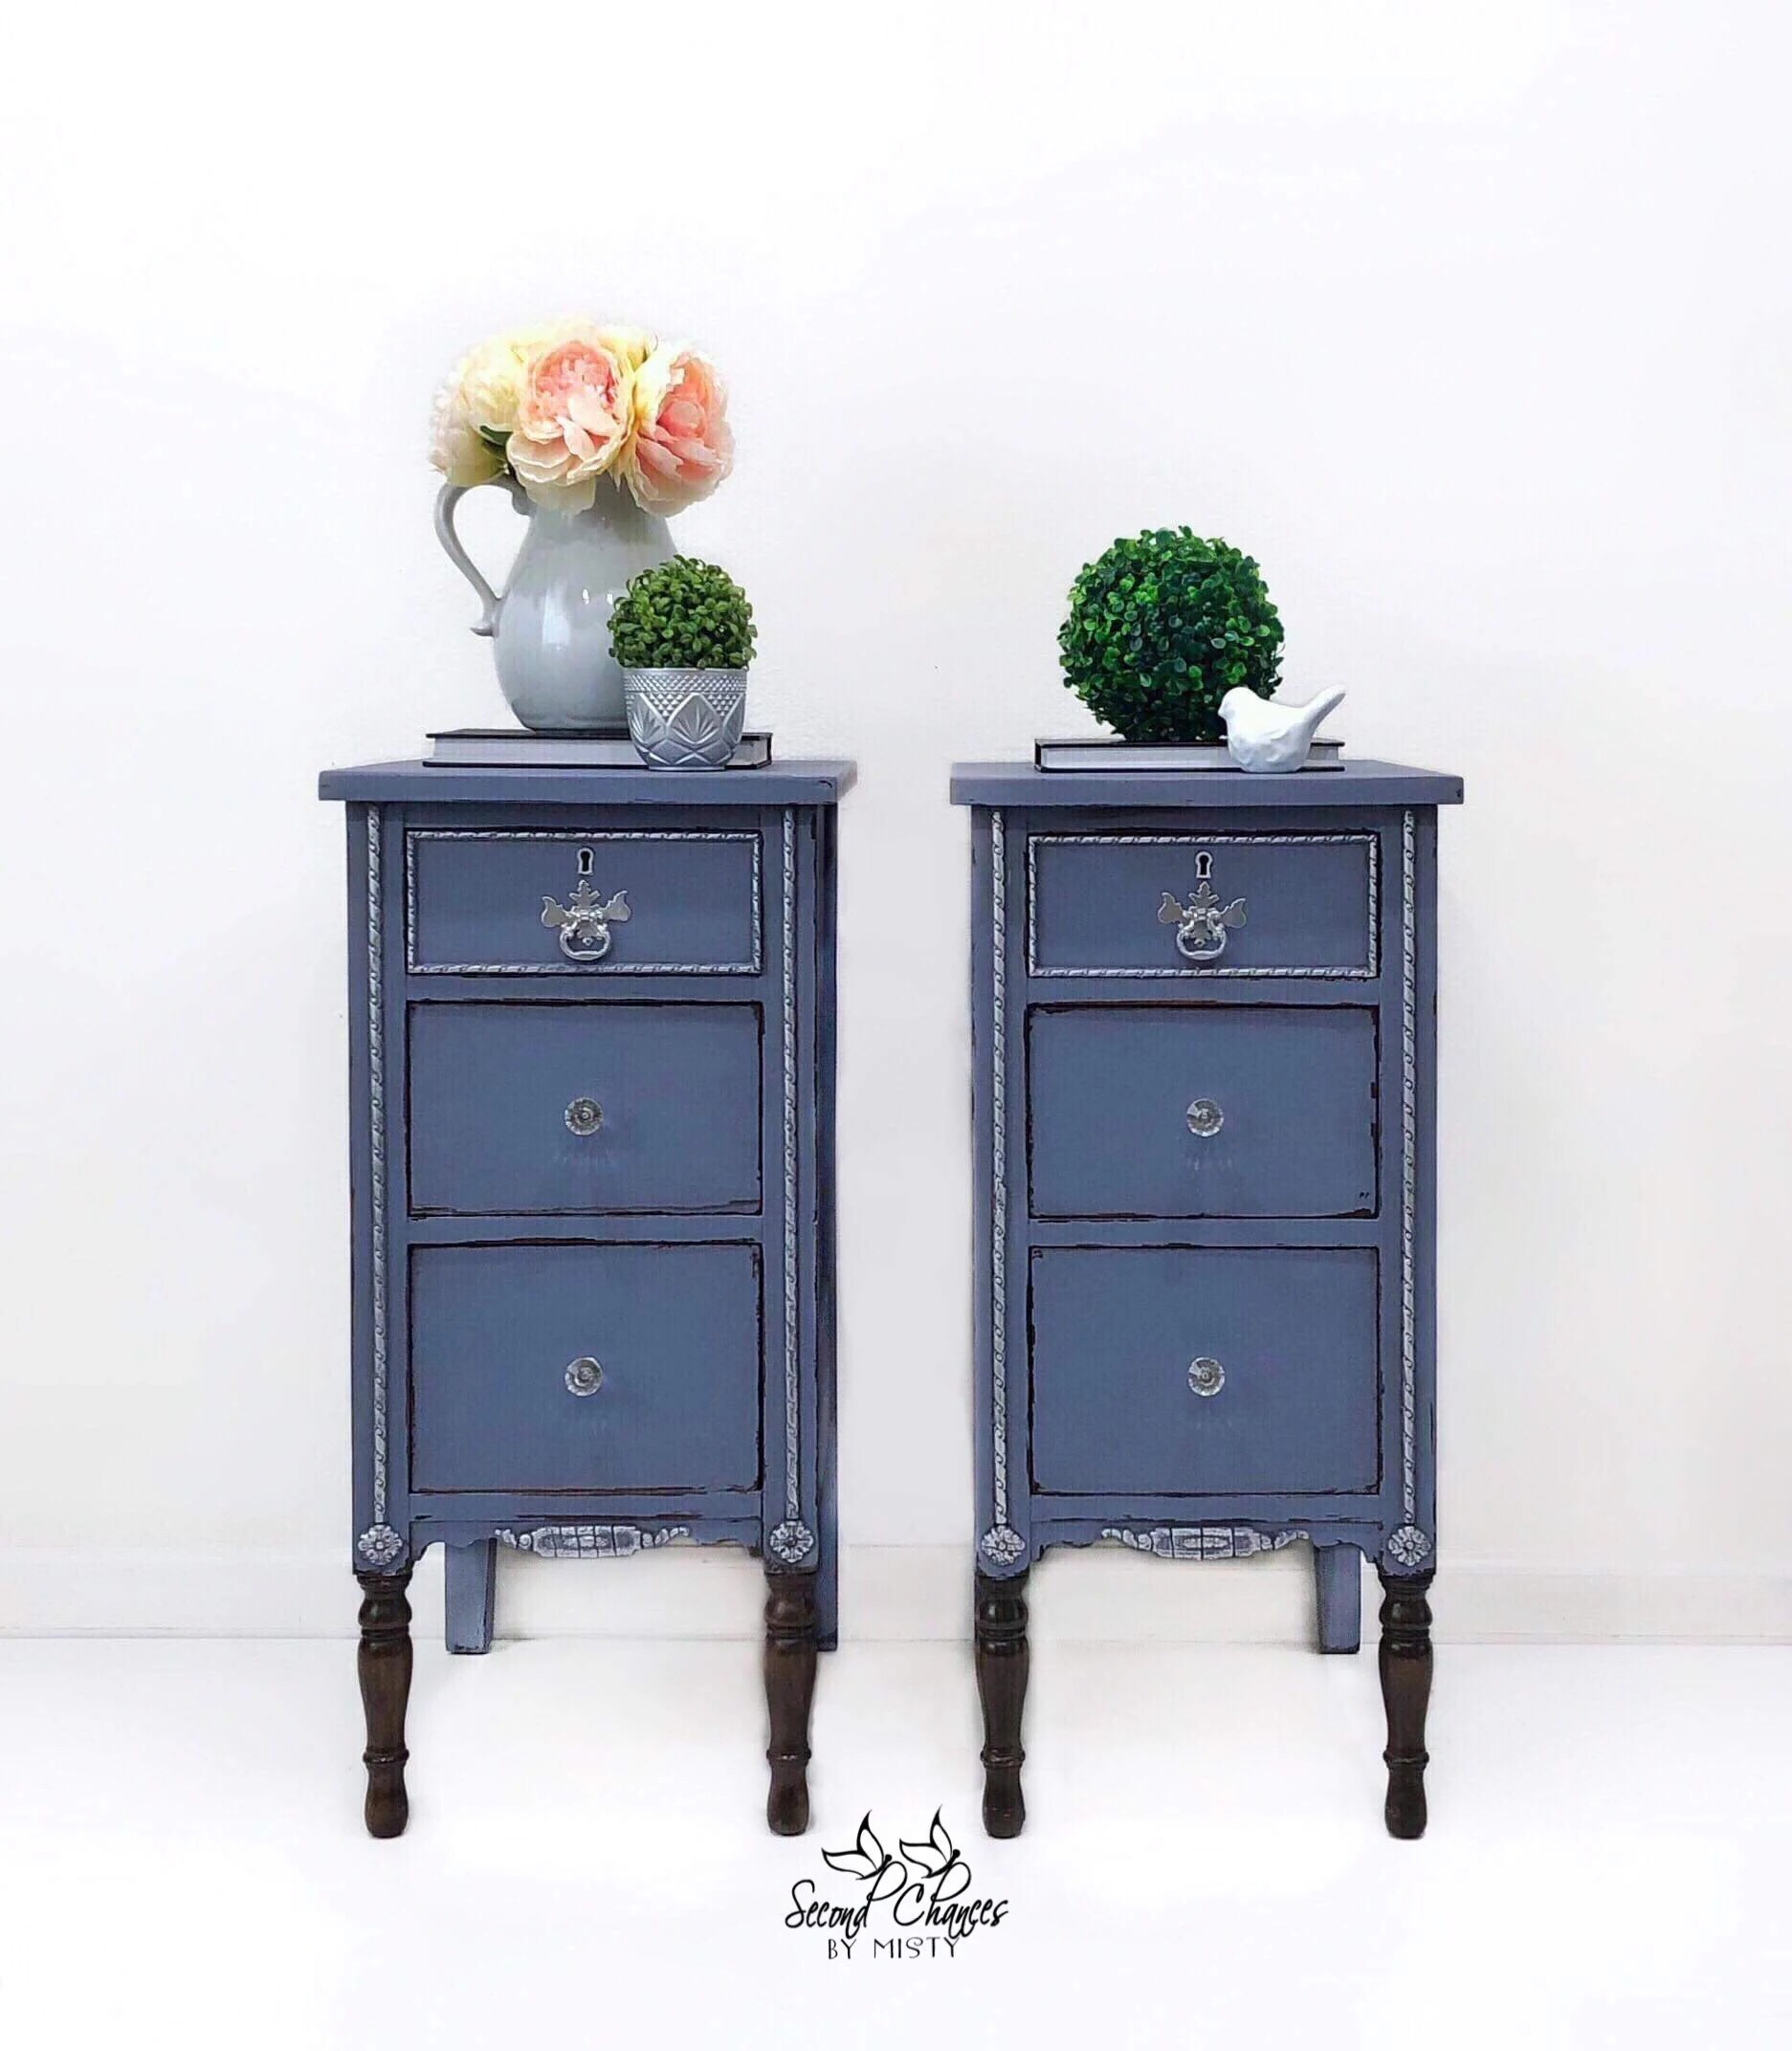 Sold Example Only Nightstands End Tables Painted Blue Distressed And Silver Gilding Wax